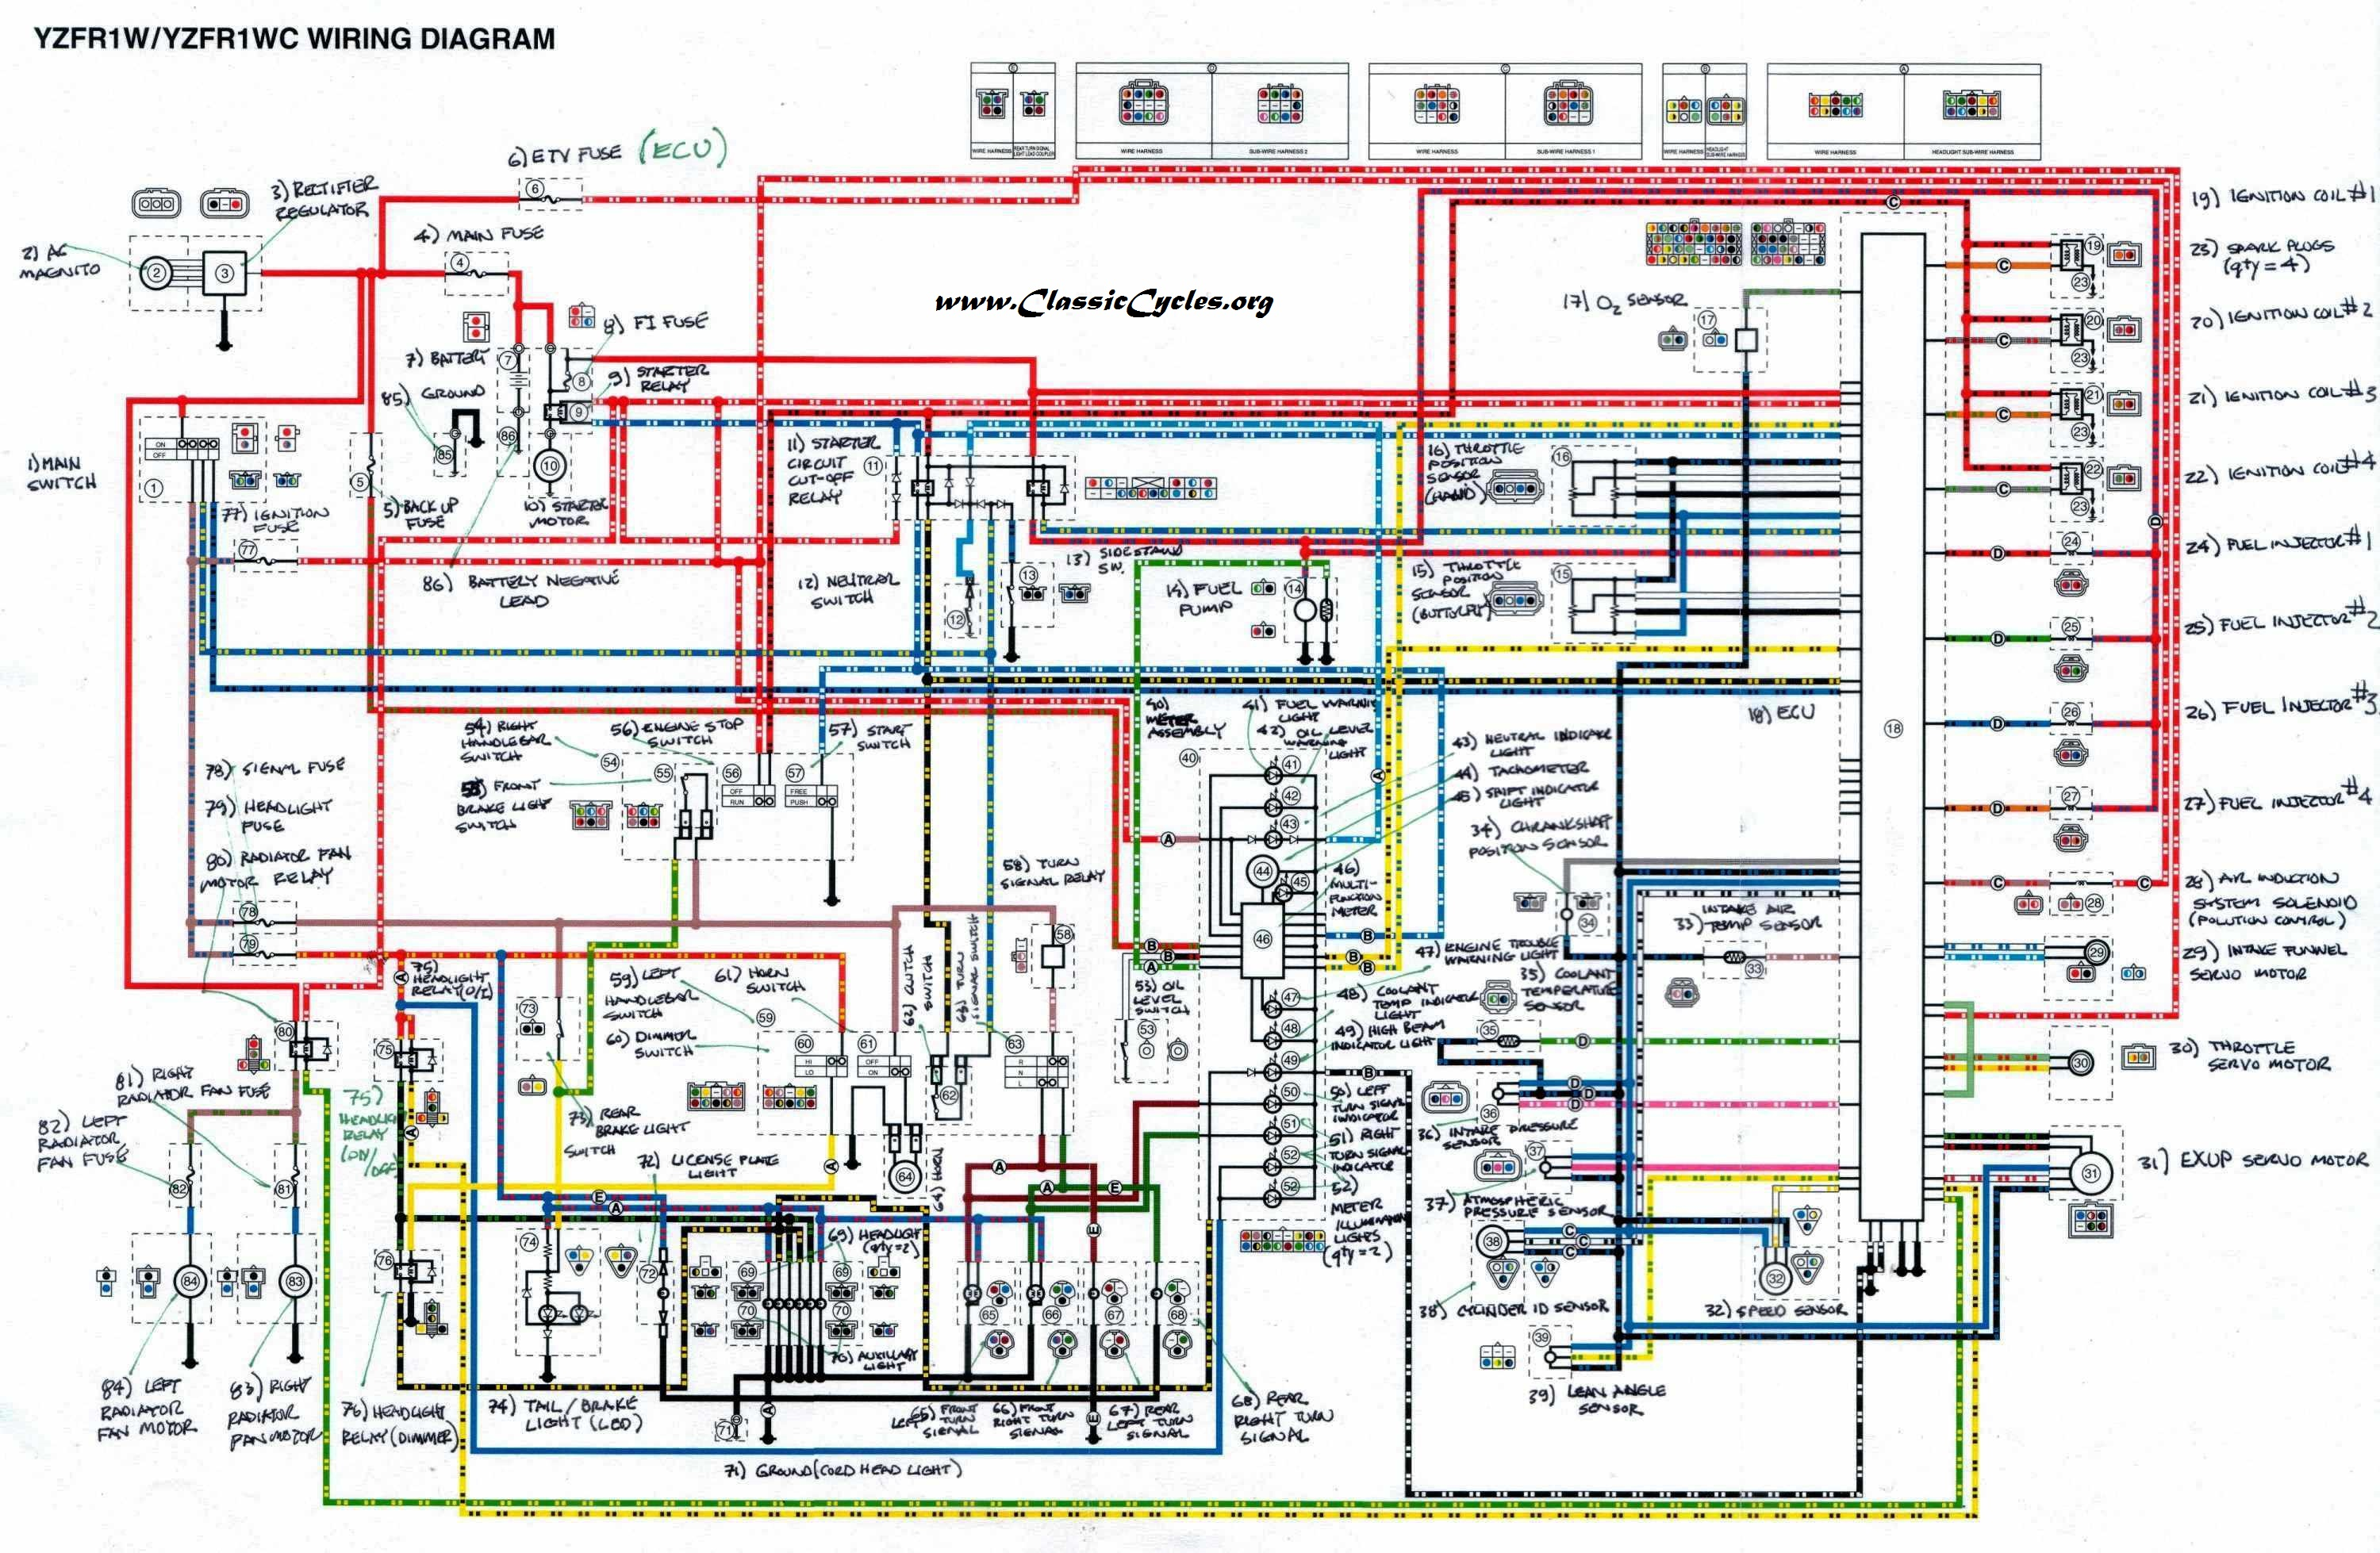 yamaha gx 80 1976 moto yamaha outboard motor wiring diagrams the wiring diagram yamaha dt250 wiring diagram at webbmarketing.co